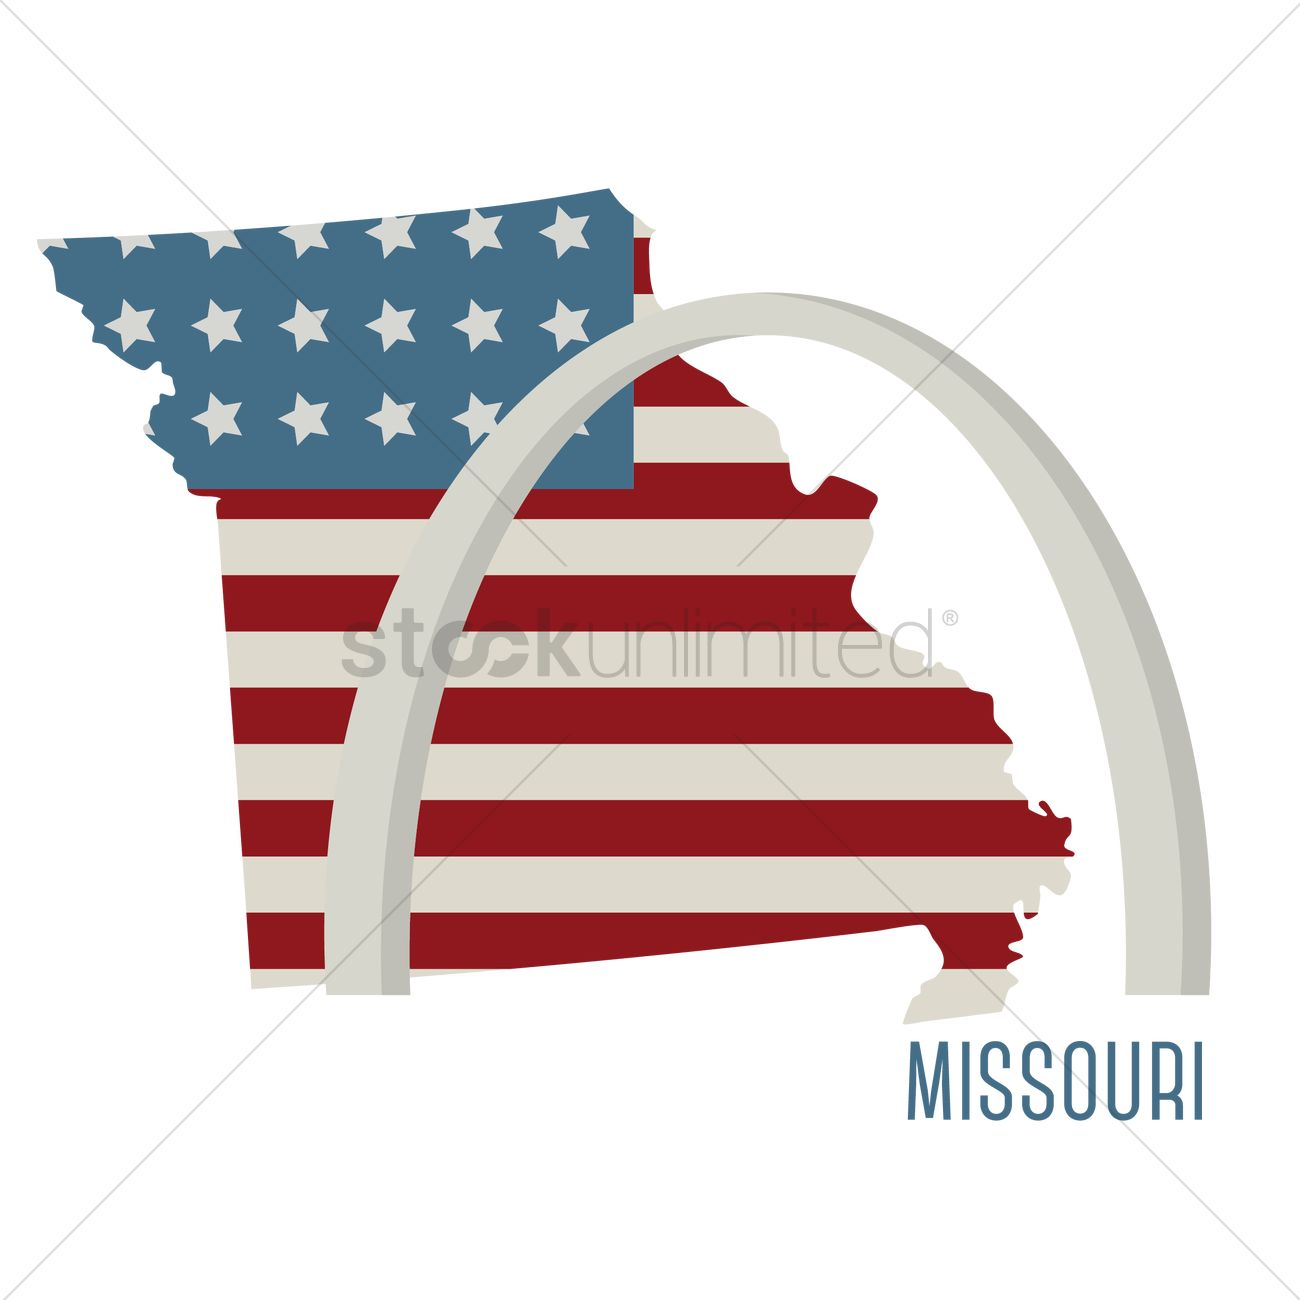 Missouri State Map With St Louis Gateway Arch Vector Image - United states map of missouri